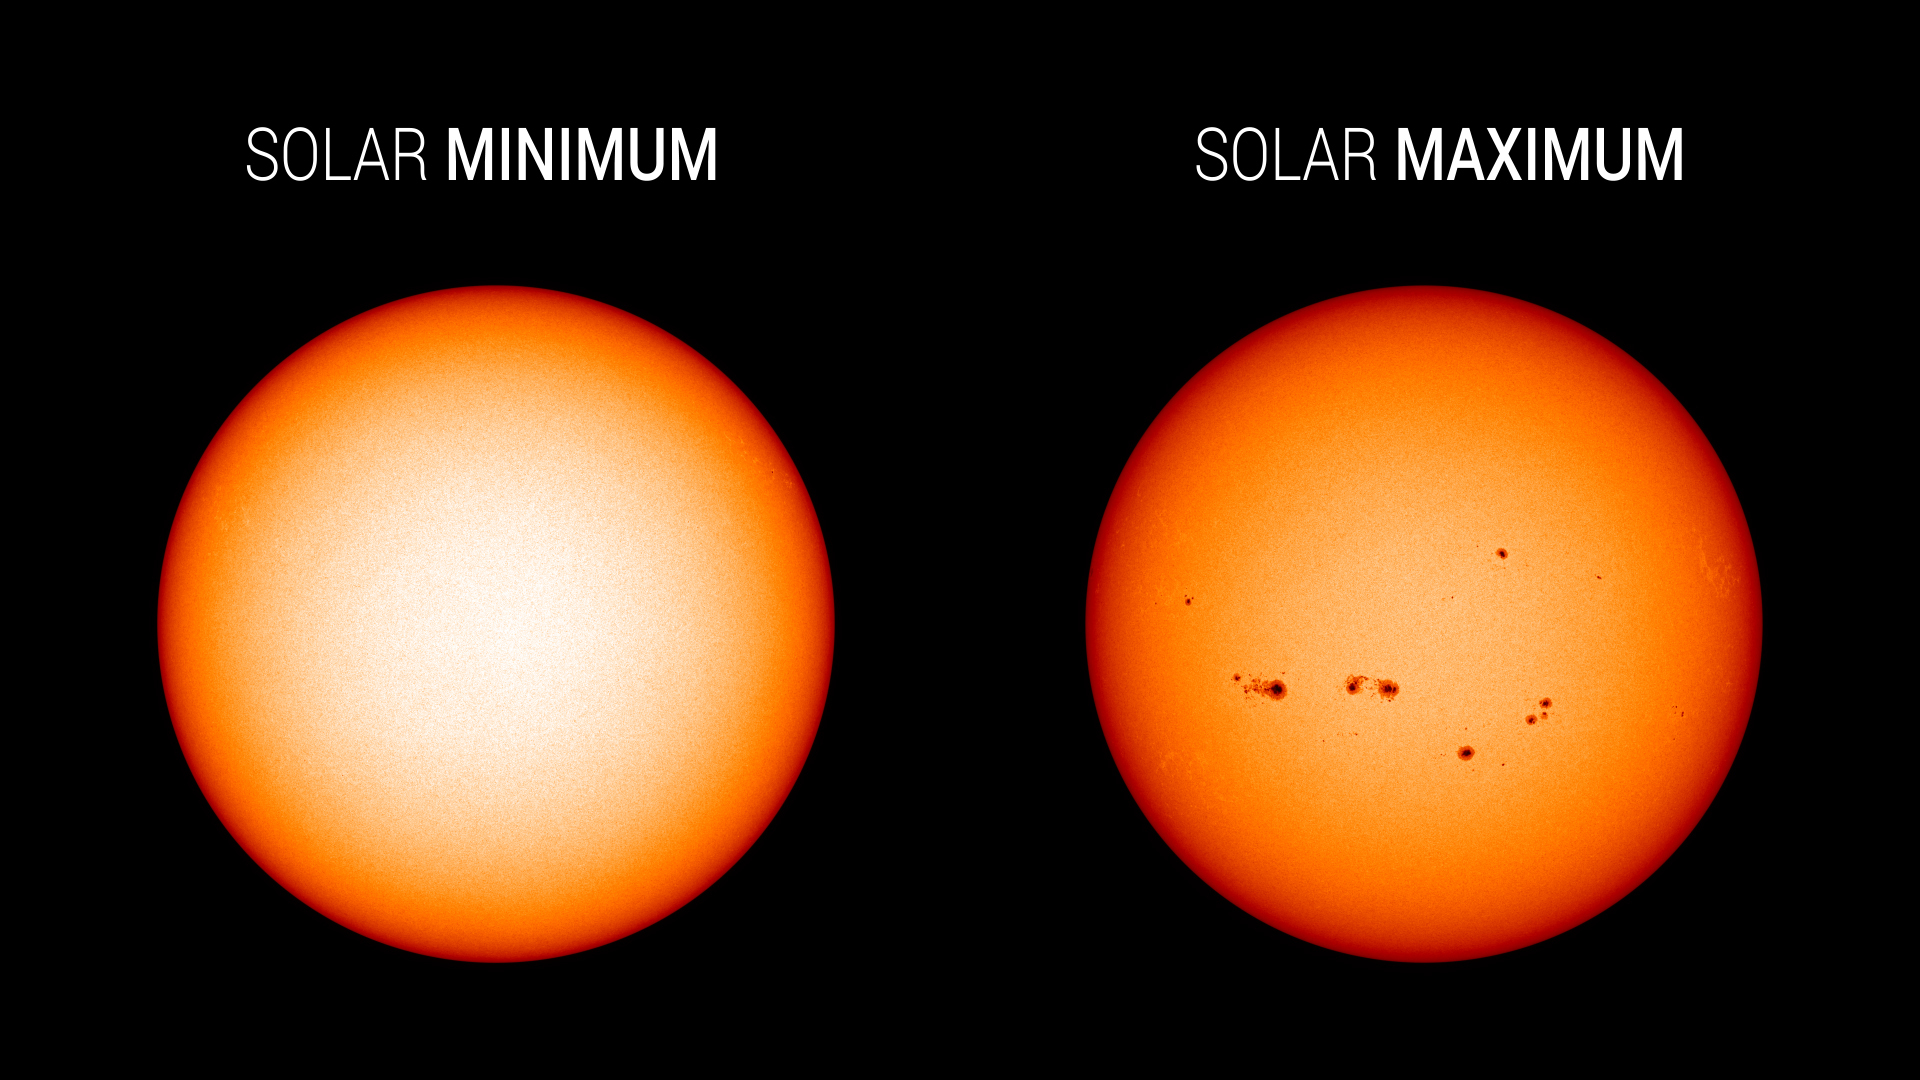 sunspots comparison.'